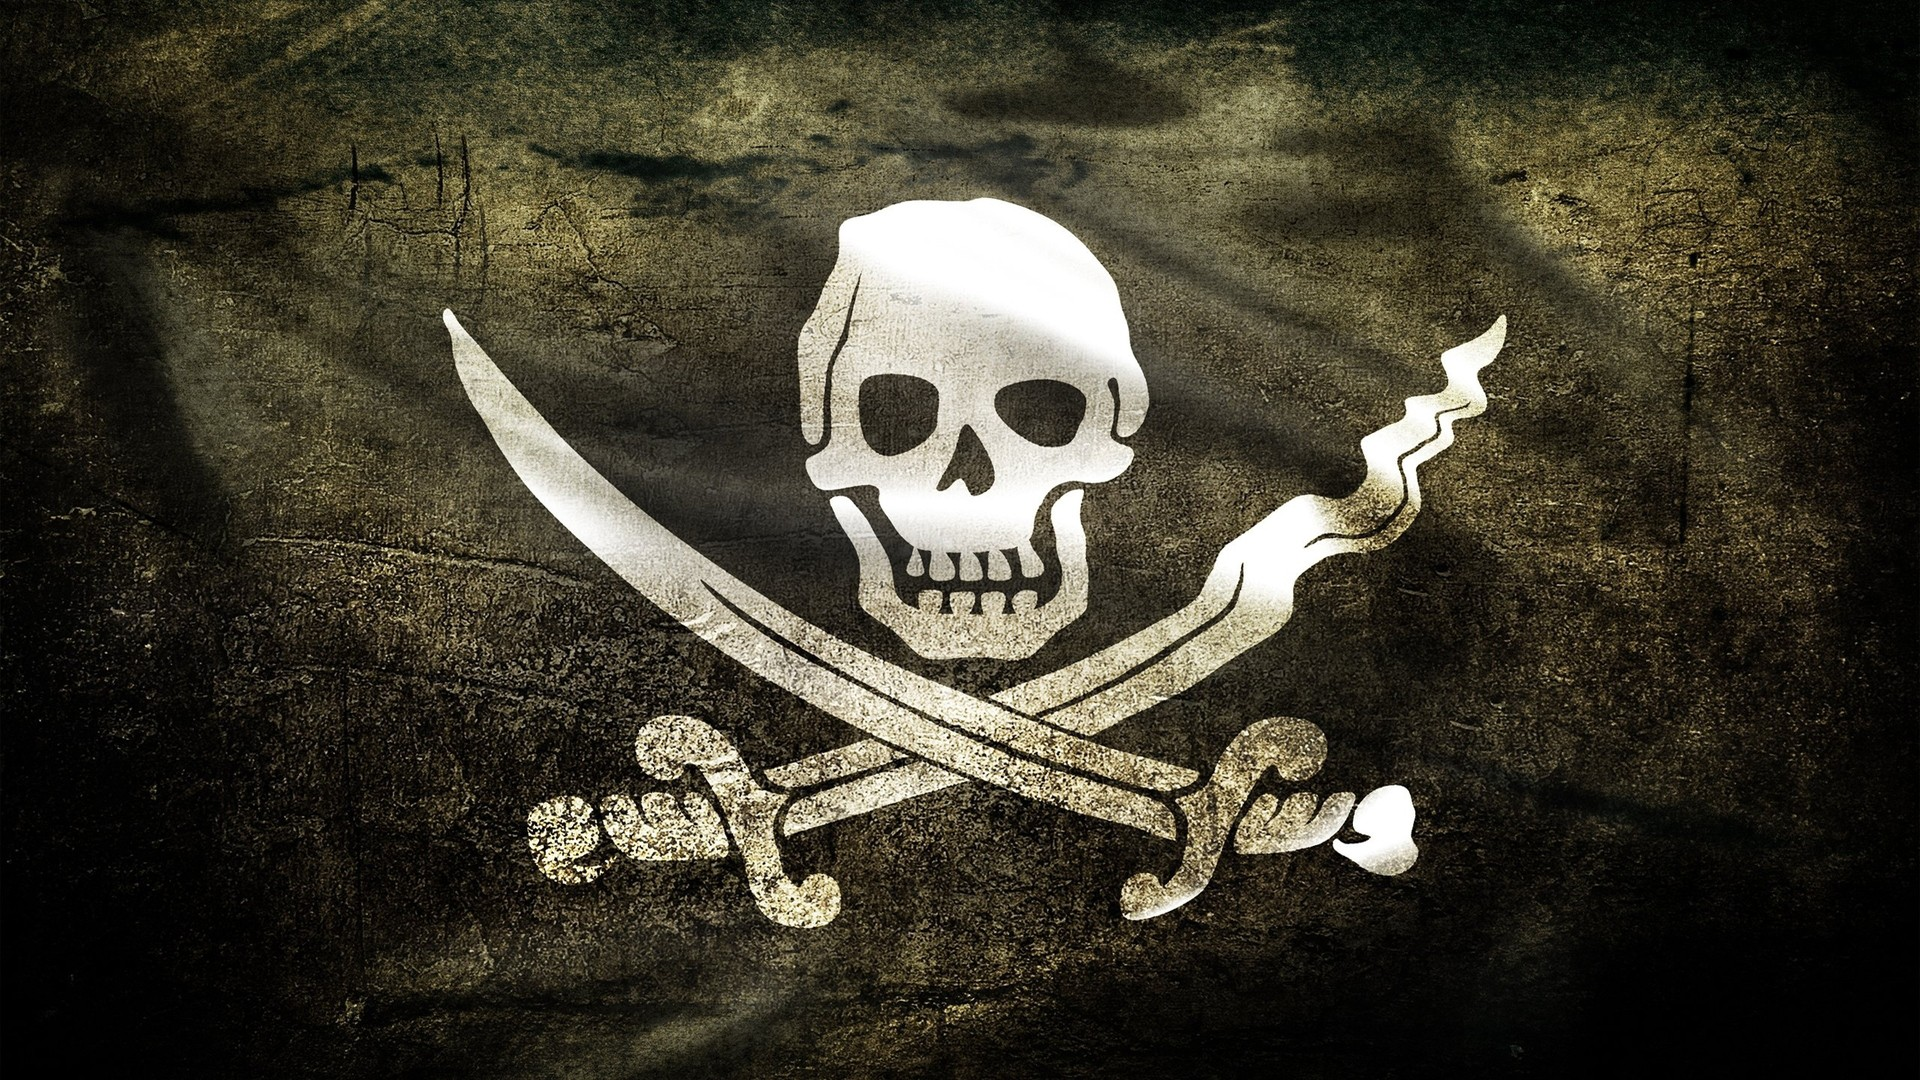 Pirate background download free hd backgrounds for desktop mobile laptop in any resolution - Pirate background ...